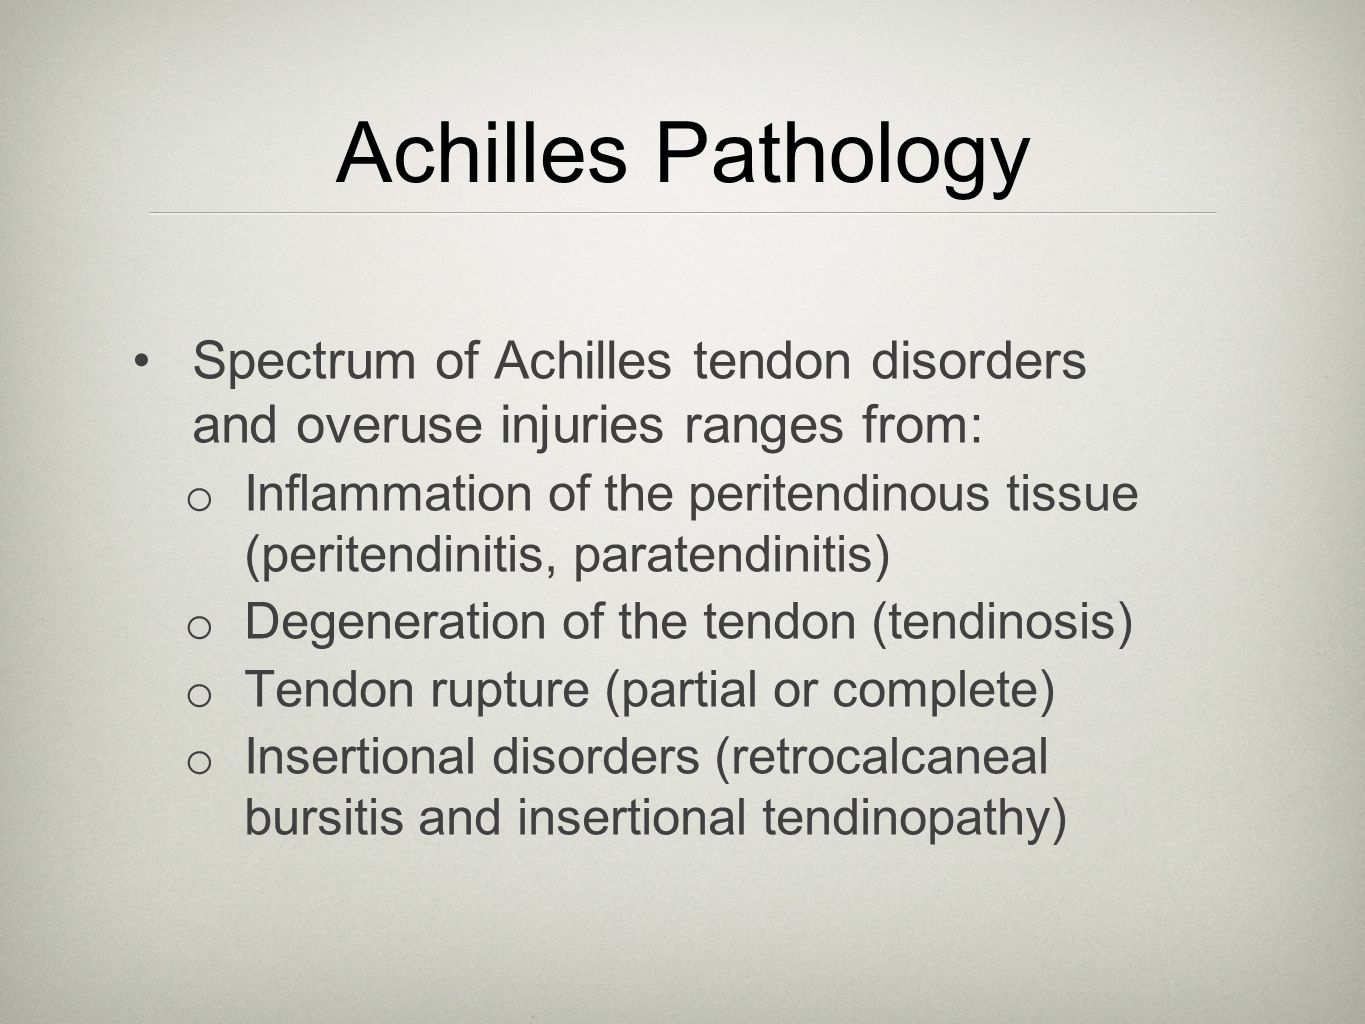 Achilles Pathology Spectrum of Achilles tendon disorders and overuse injuries ranges from: